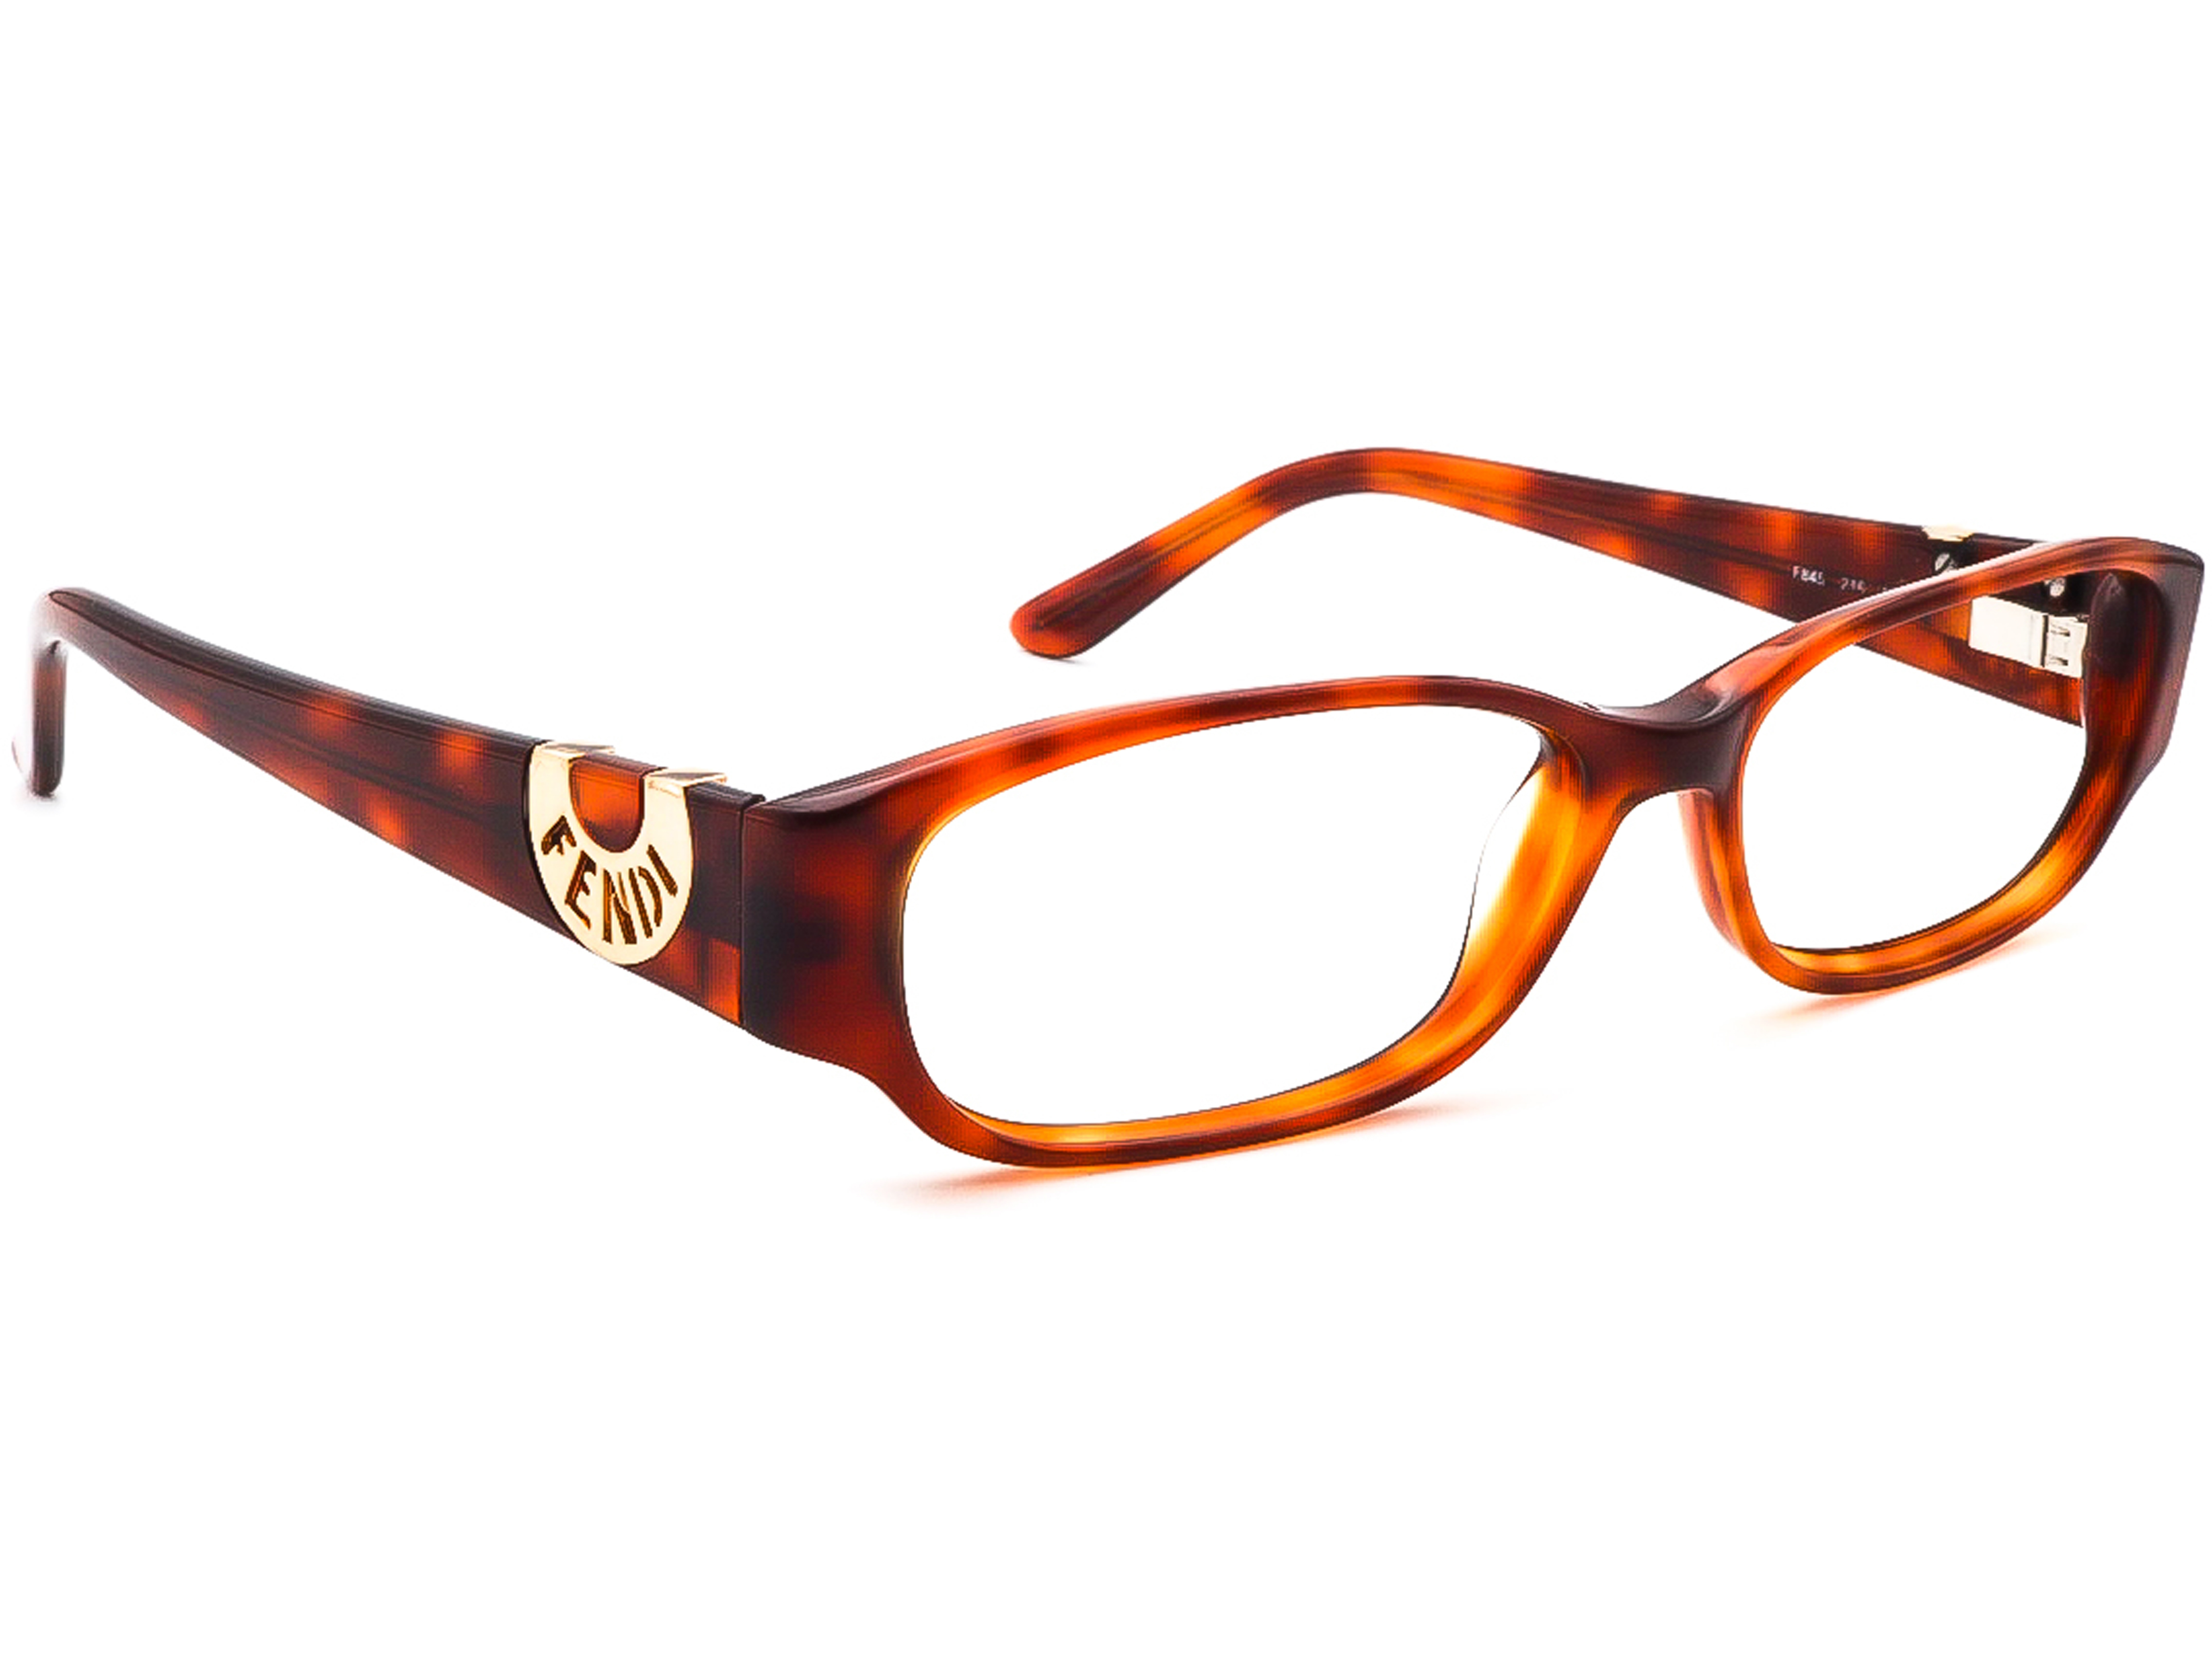 Fendi F845 216 Eyeglasses